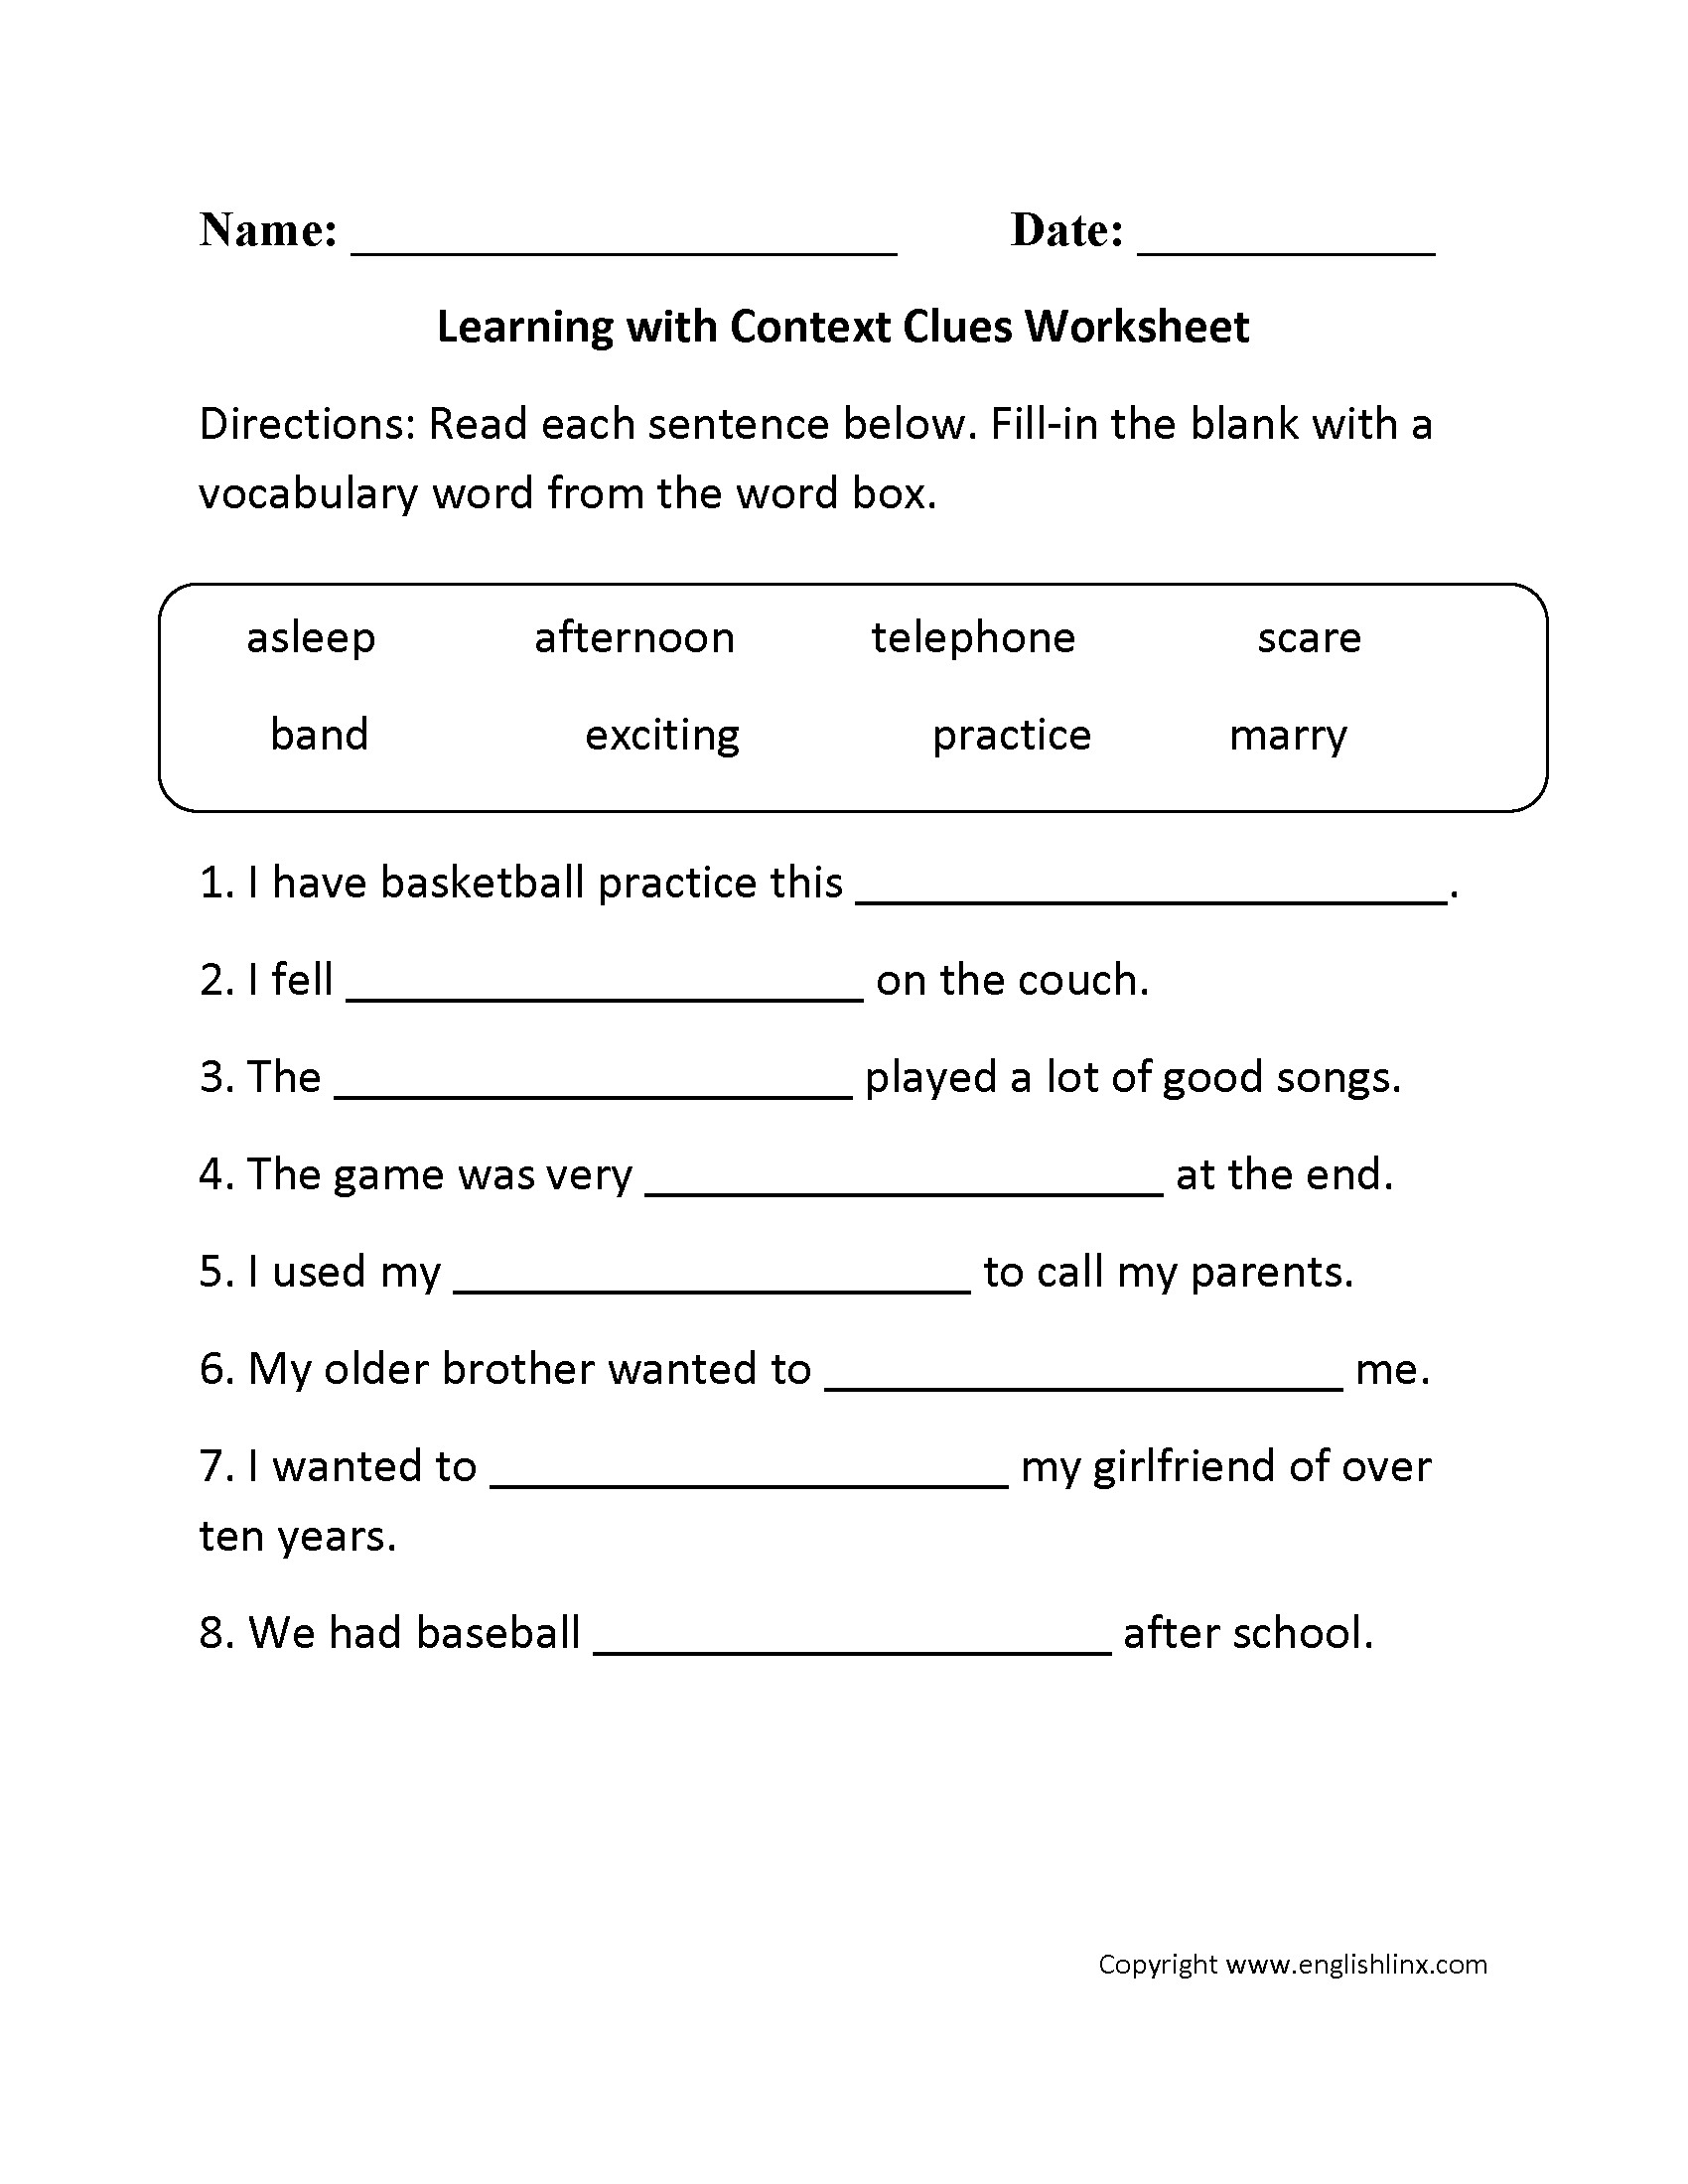 5th Grade Ecosystem Worksheets the Math 1st Grade Reading Worksheets Vocab In Context